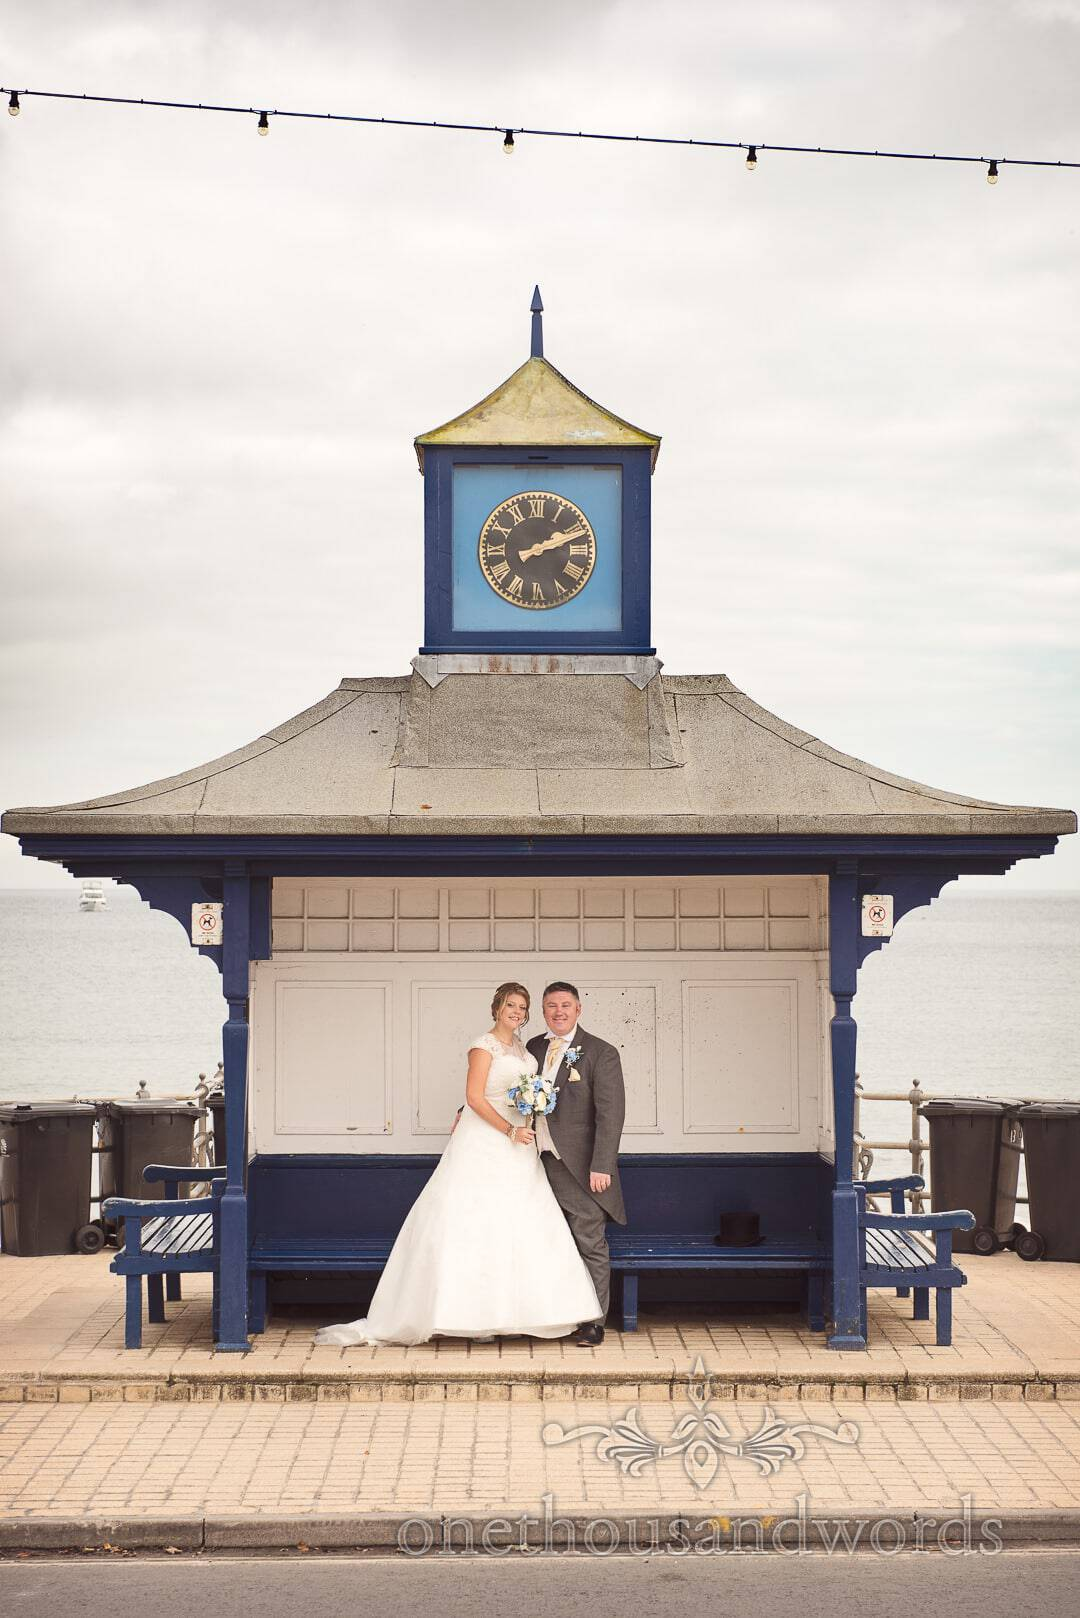 Bride and groom in Swanage Clock Tower by the sea in Dorset